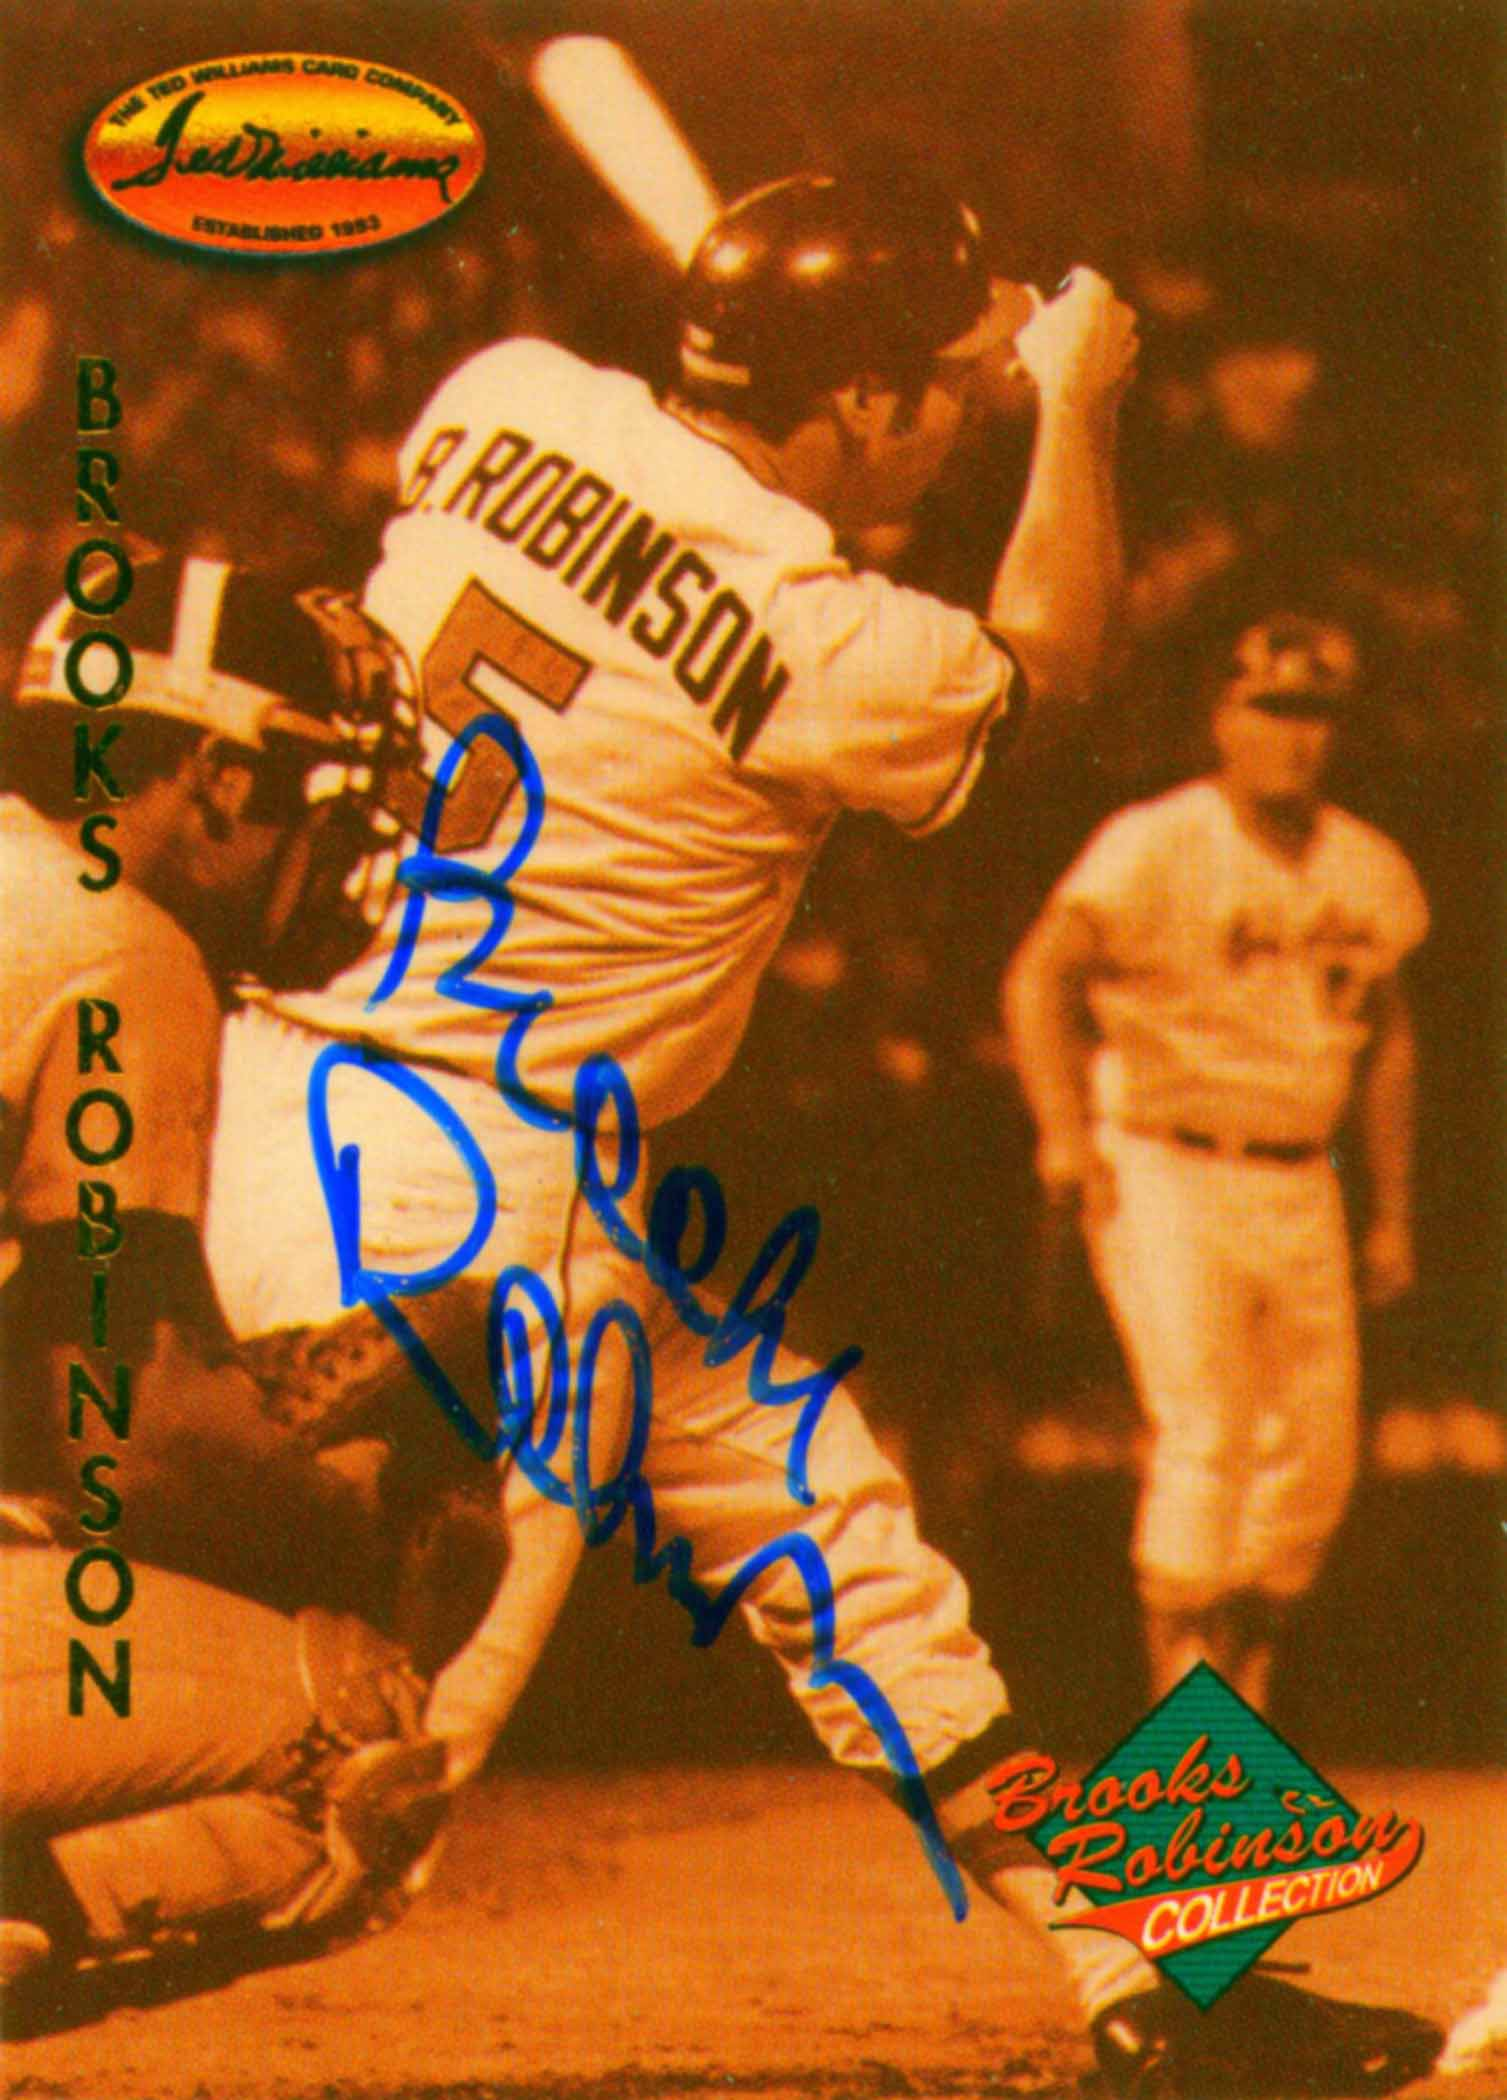 1993 Ted Williams Brooks Robinson Autographs